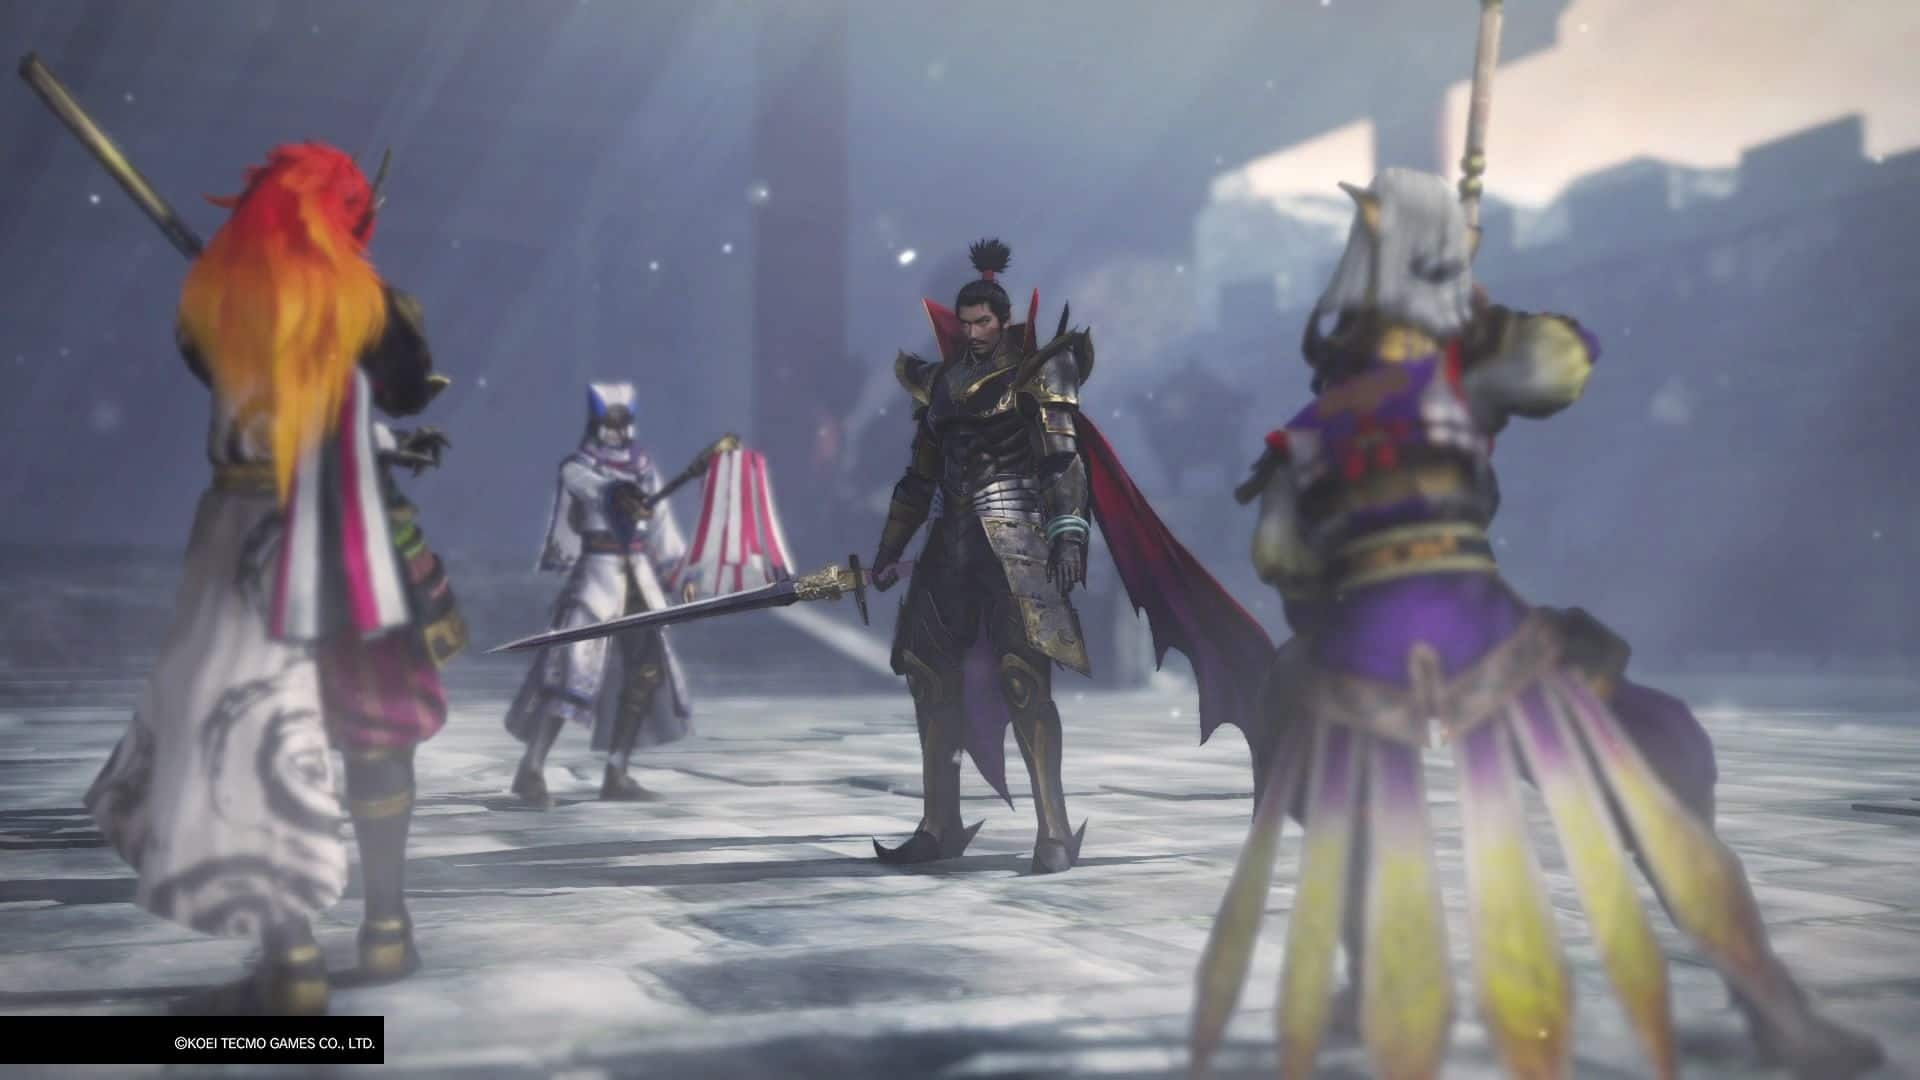 warriors orochi test screenhots